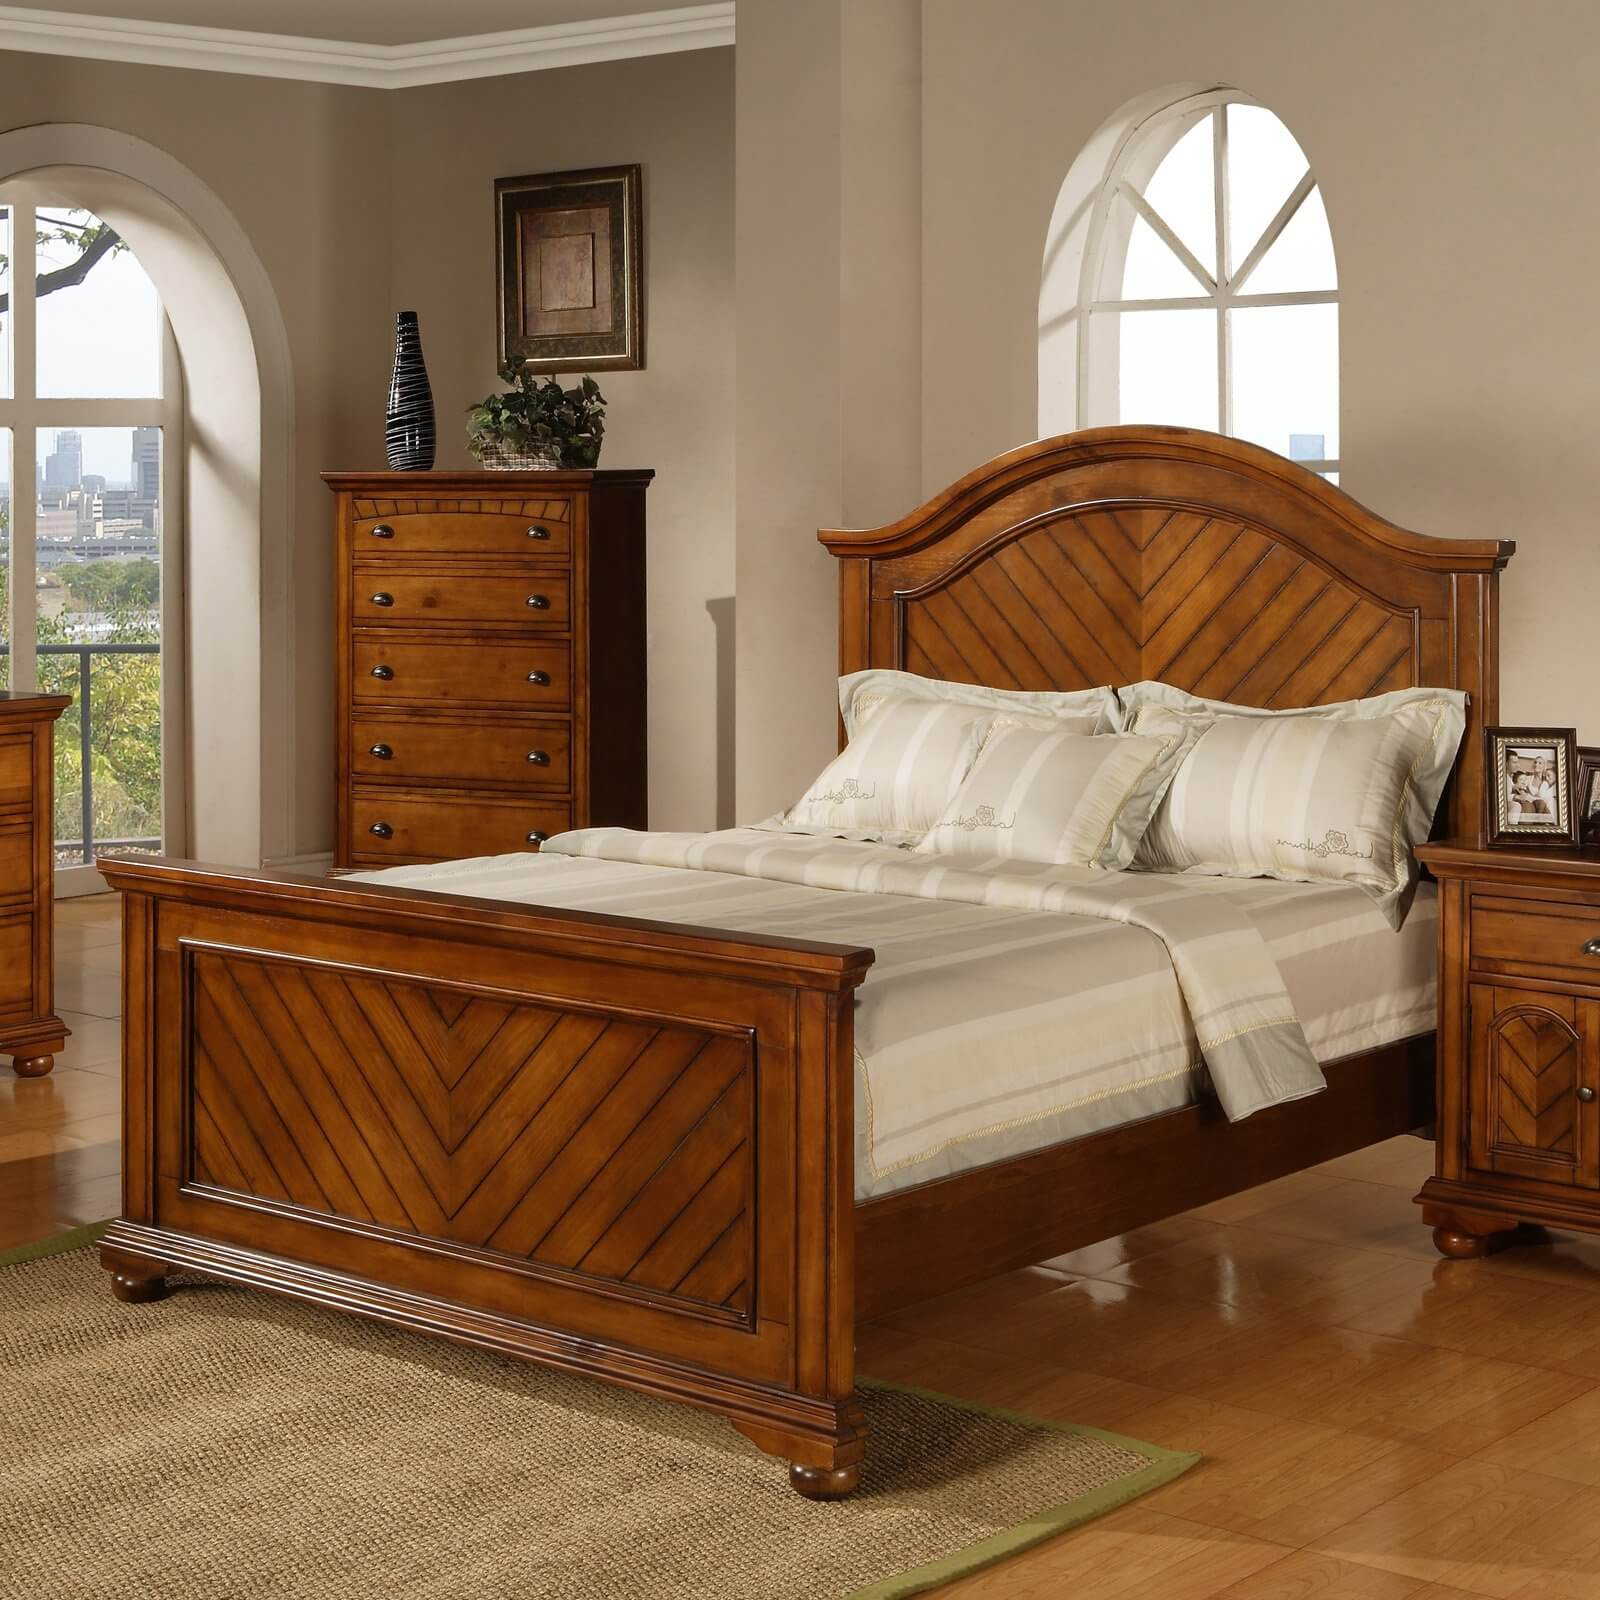 A panel bed consists of a headboard and footboard made from flat panels of wood. The panels are framed with raised molding or grooves that mimic traditional wood paneling or wainscoting. The headboard and footboard are connected by wooden rails.